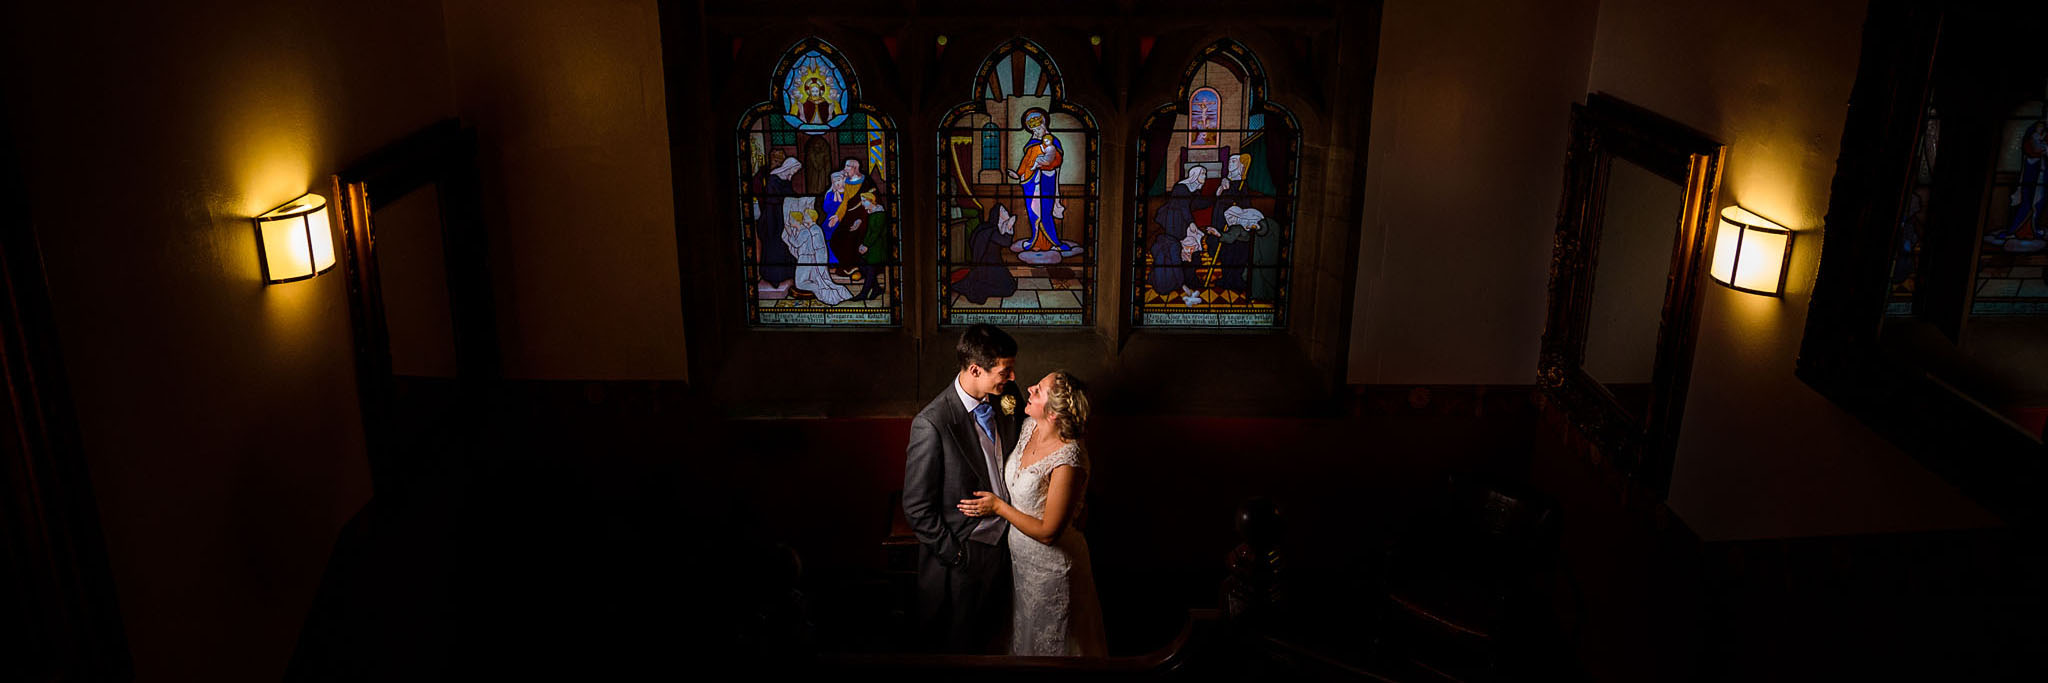 moody portrait of the bride and groom at wroxall abbey